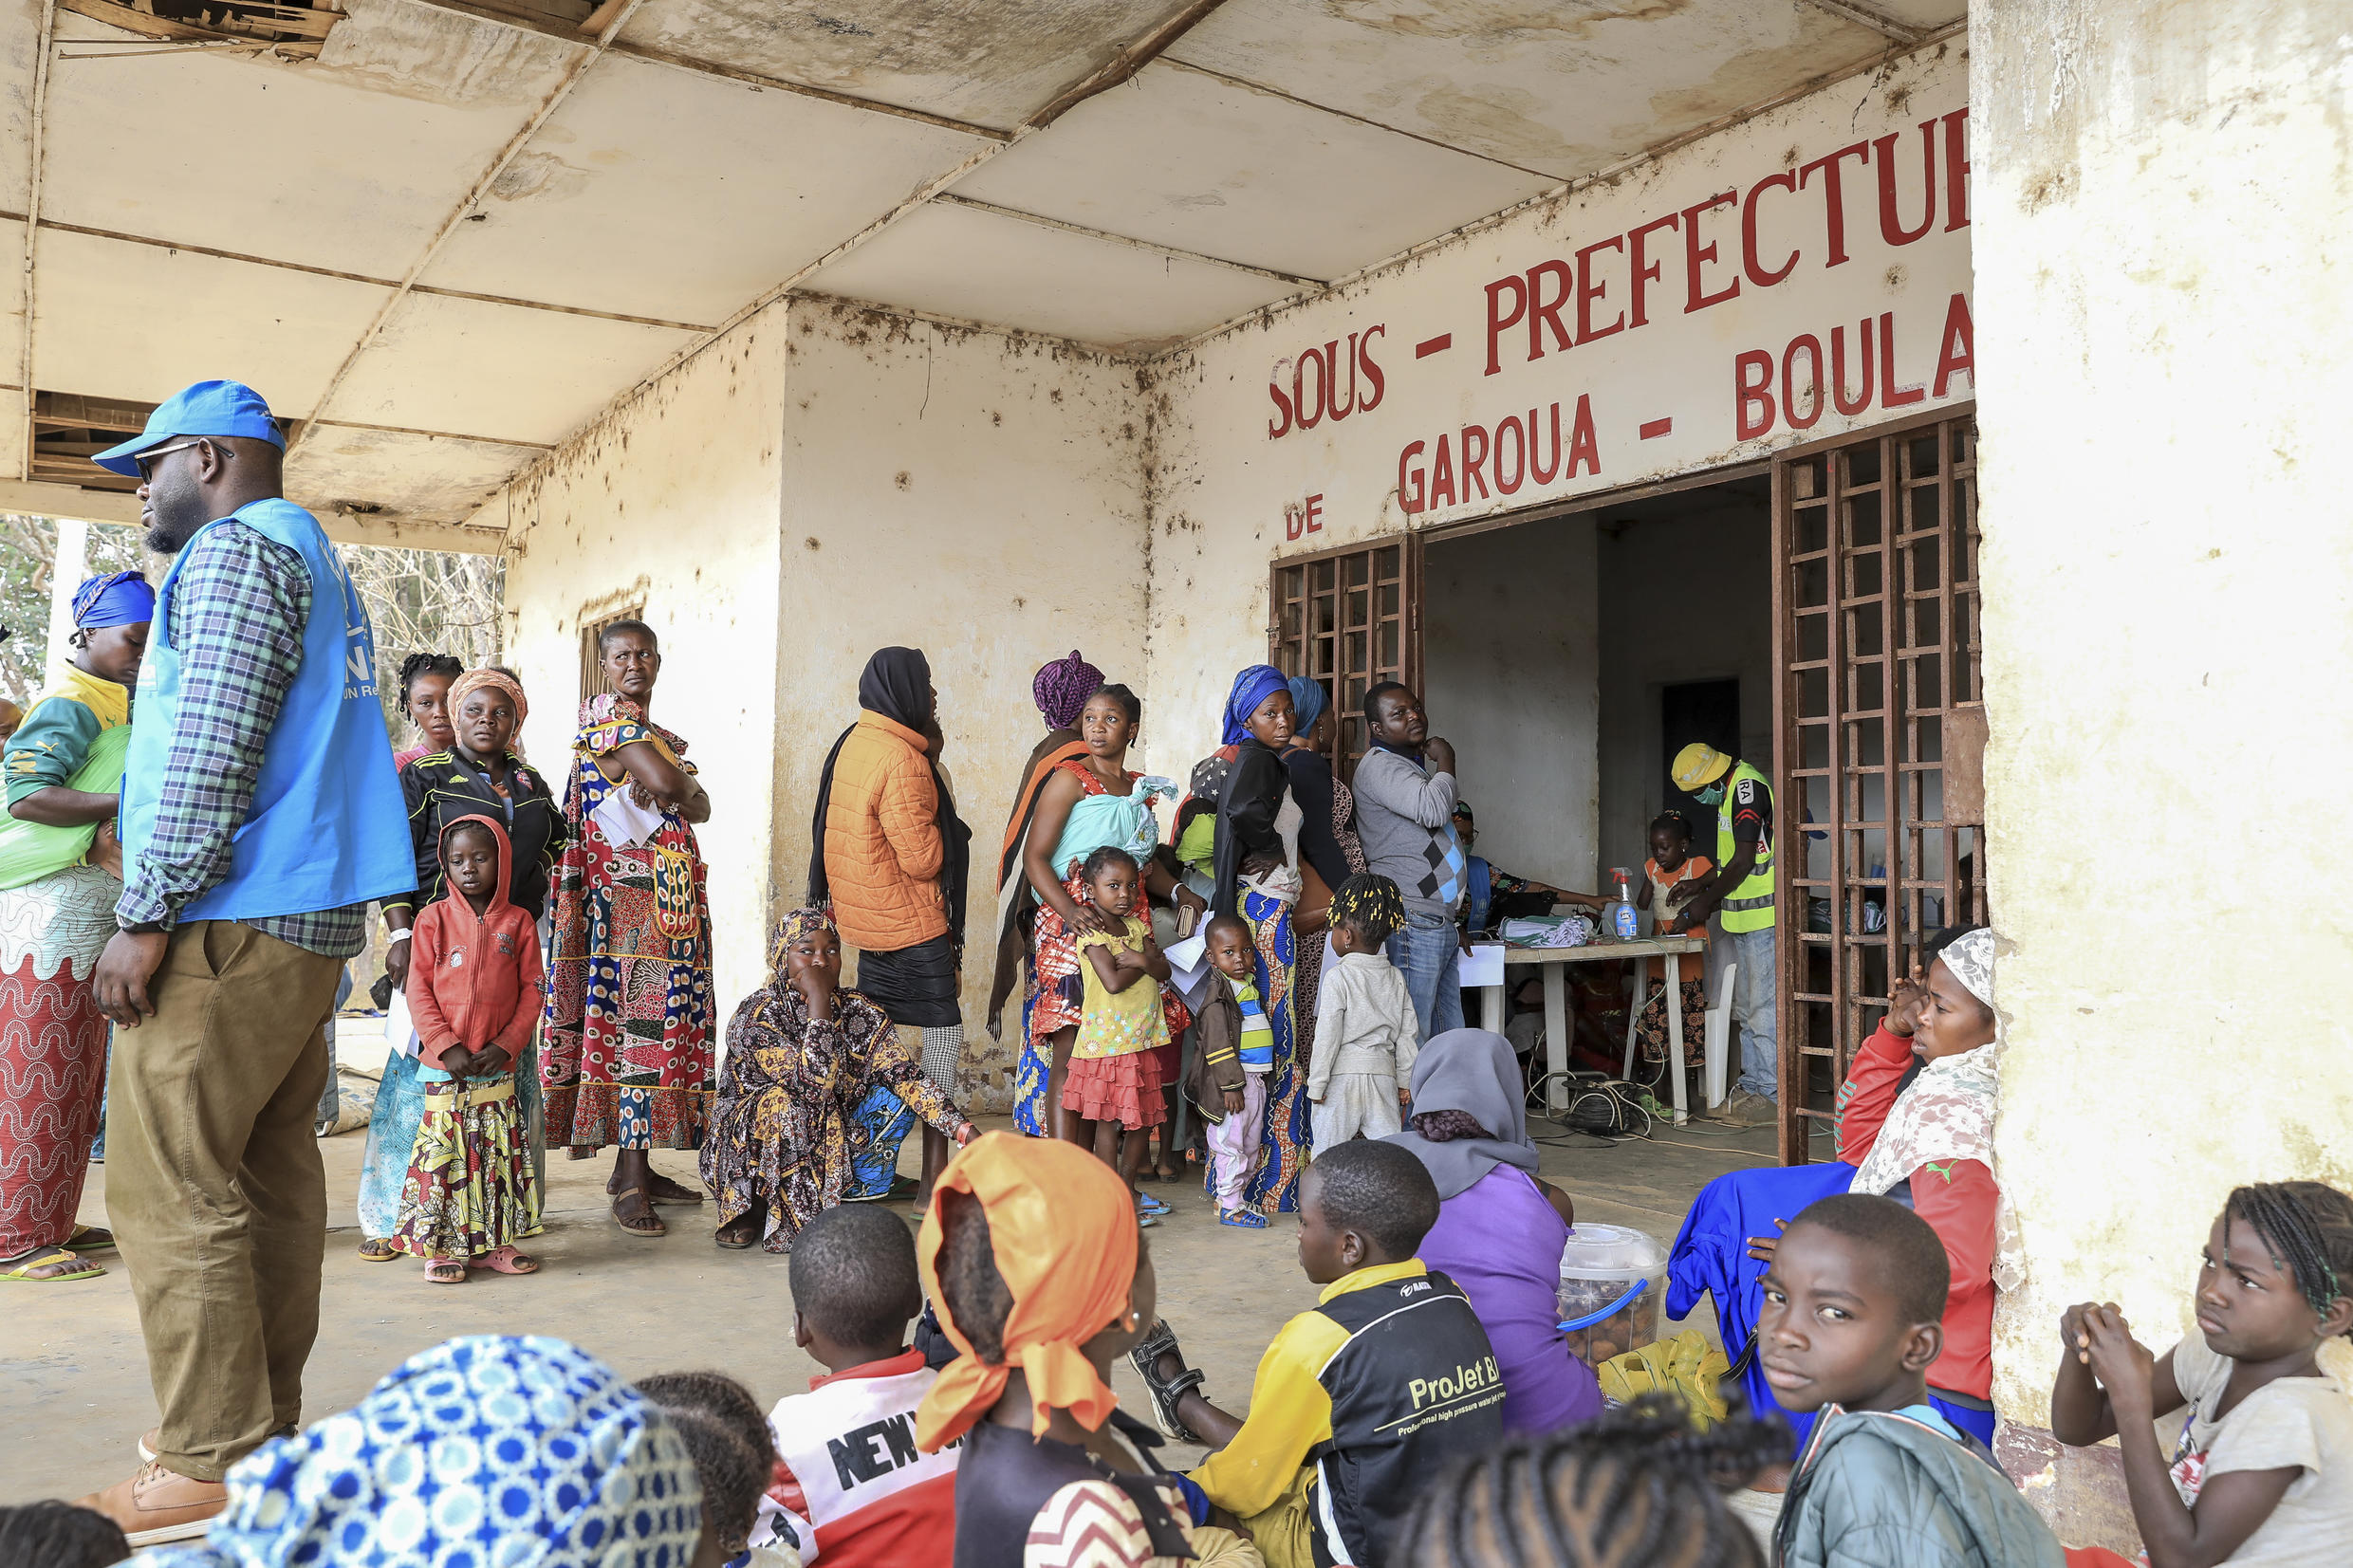 Cameroon is one of the countries sheltering refugees from the Central African Republic